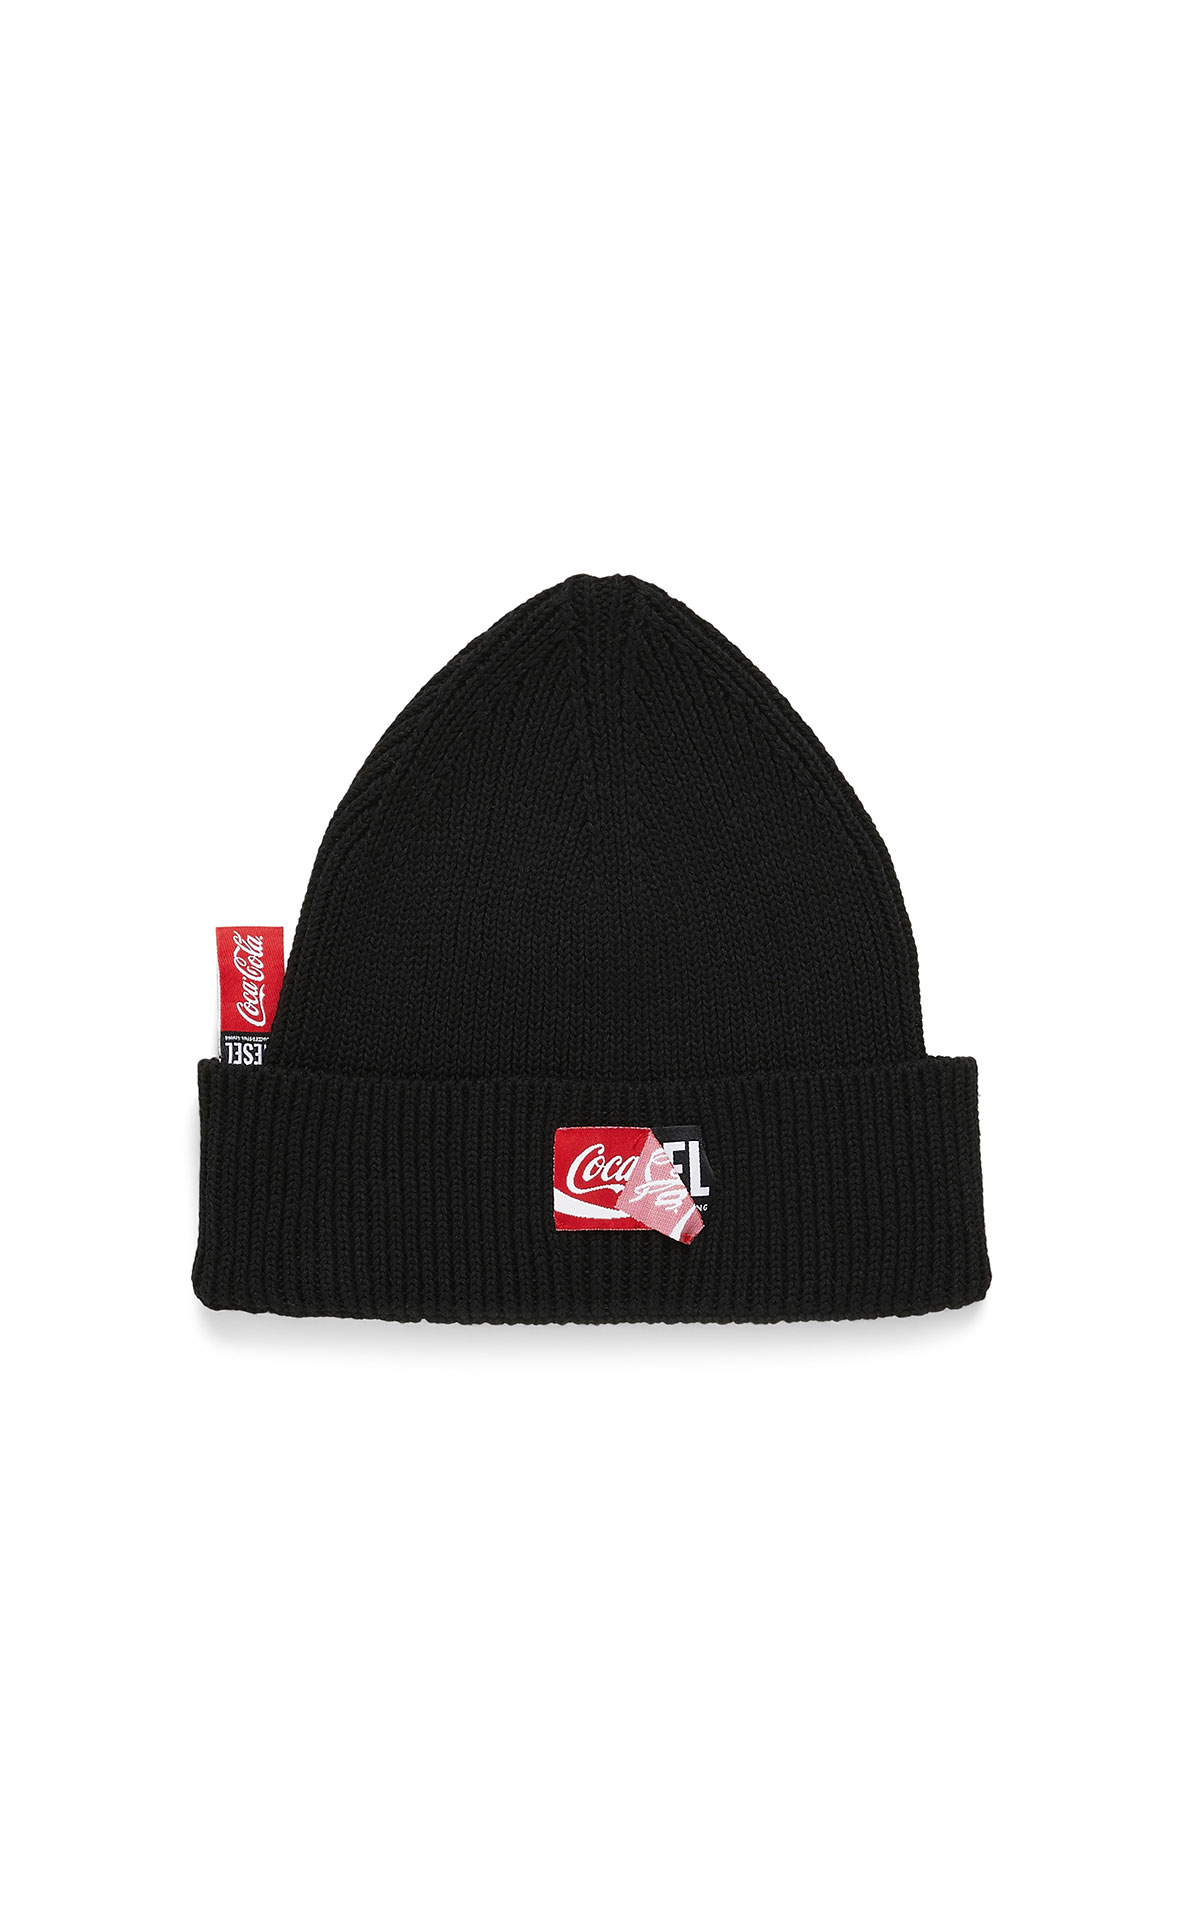 Diesel x coca cola beanie at The Bicester Village Shopping Collection